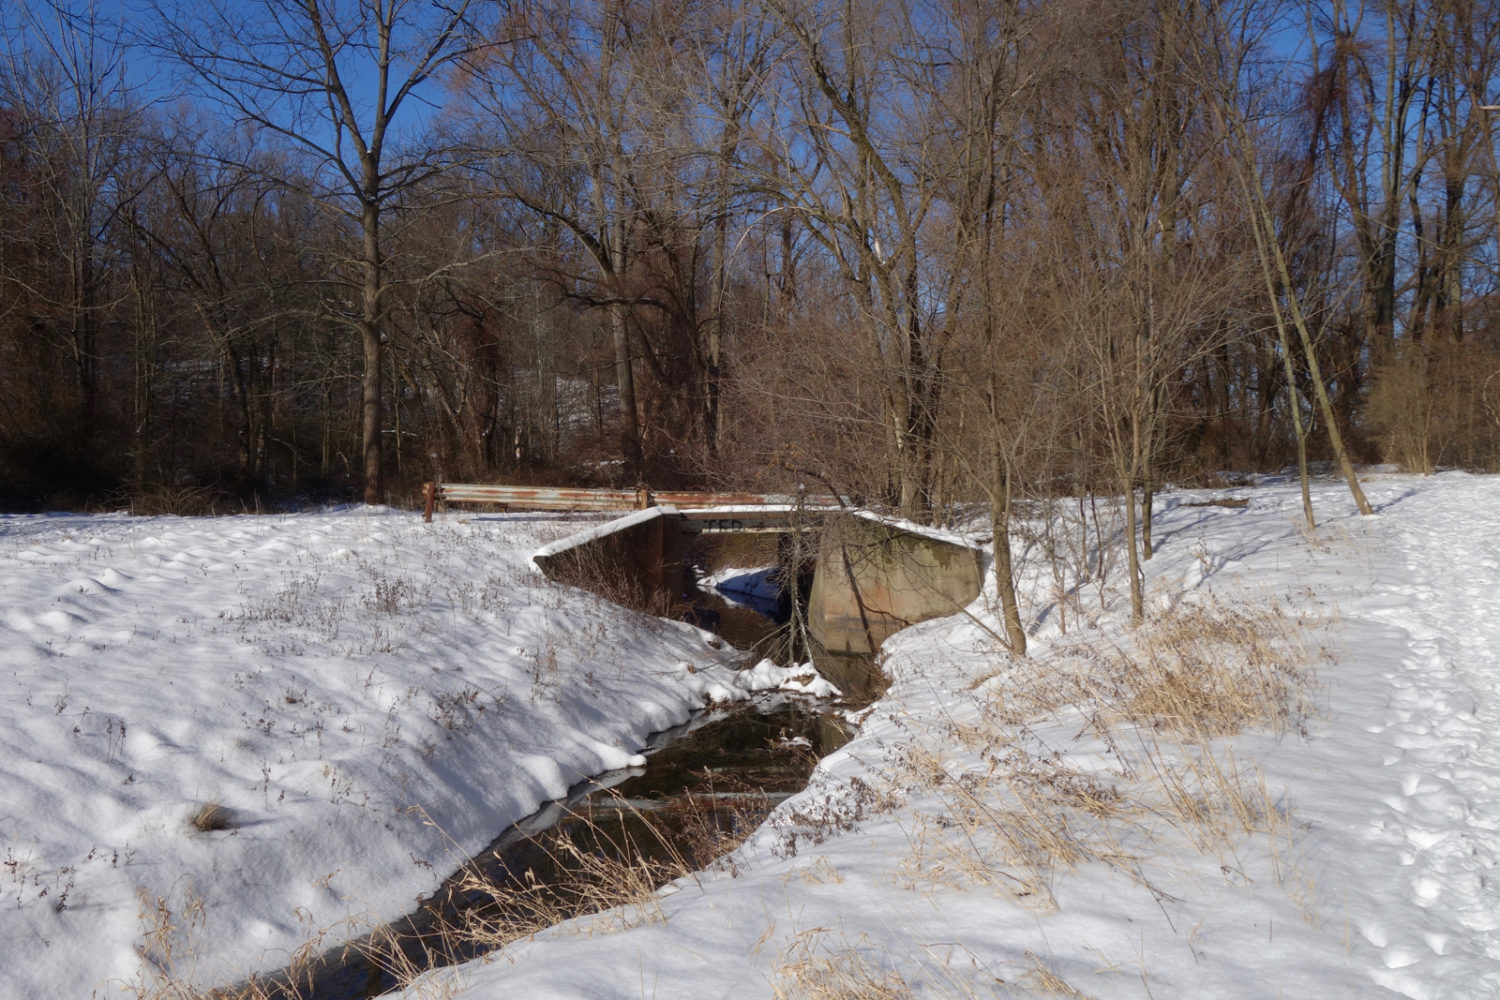 Bridge over Horseshoe Road in Winter.